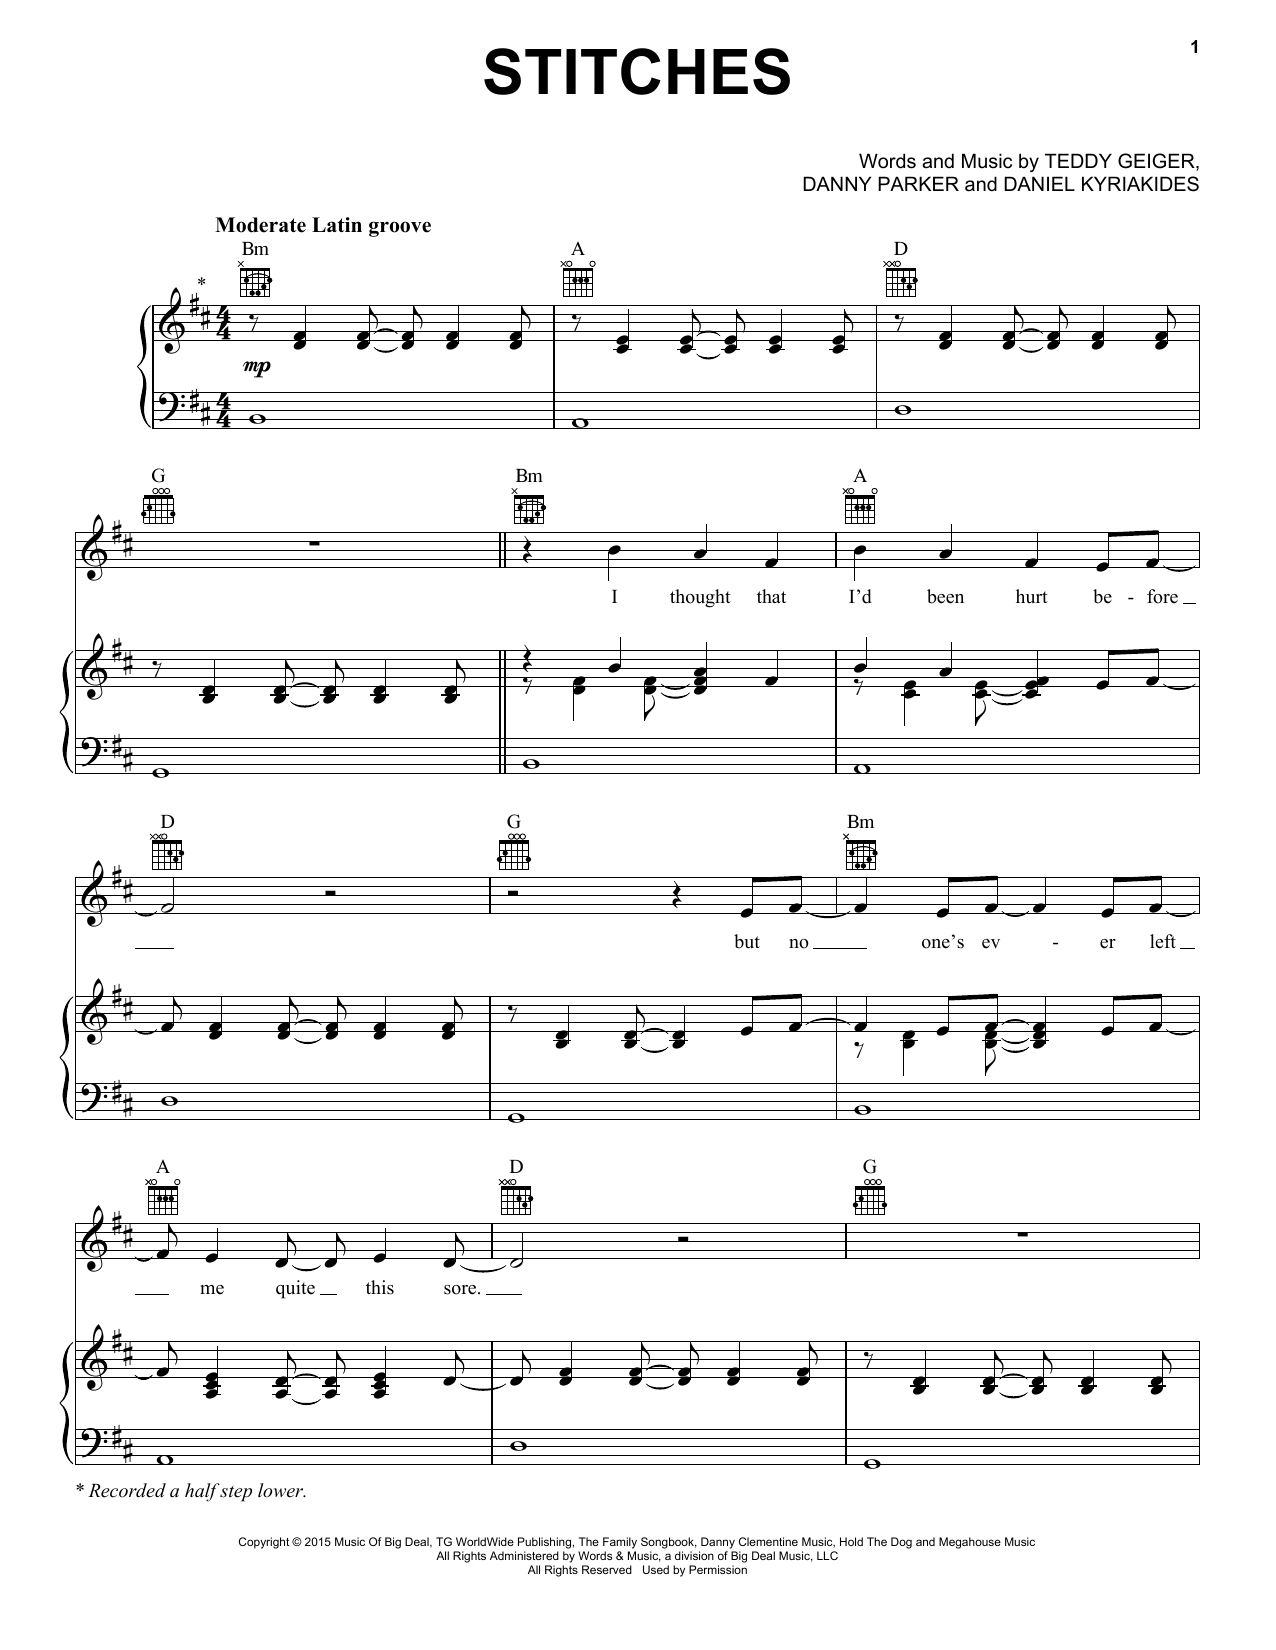 Stitches Sheet Music